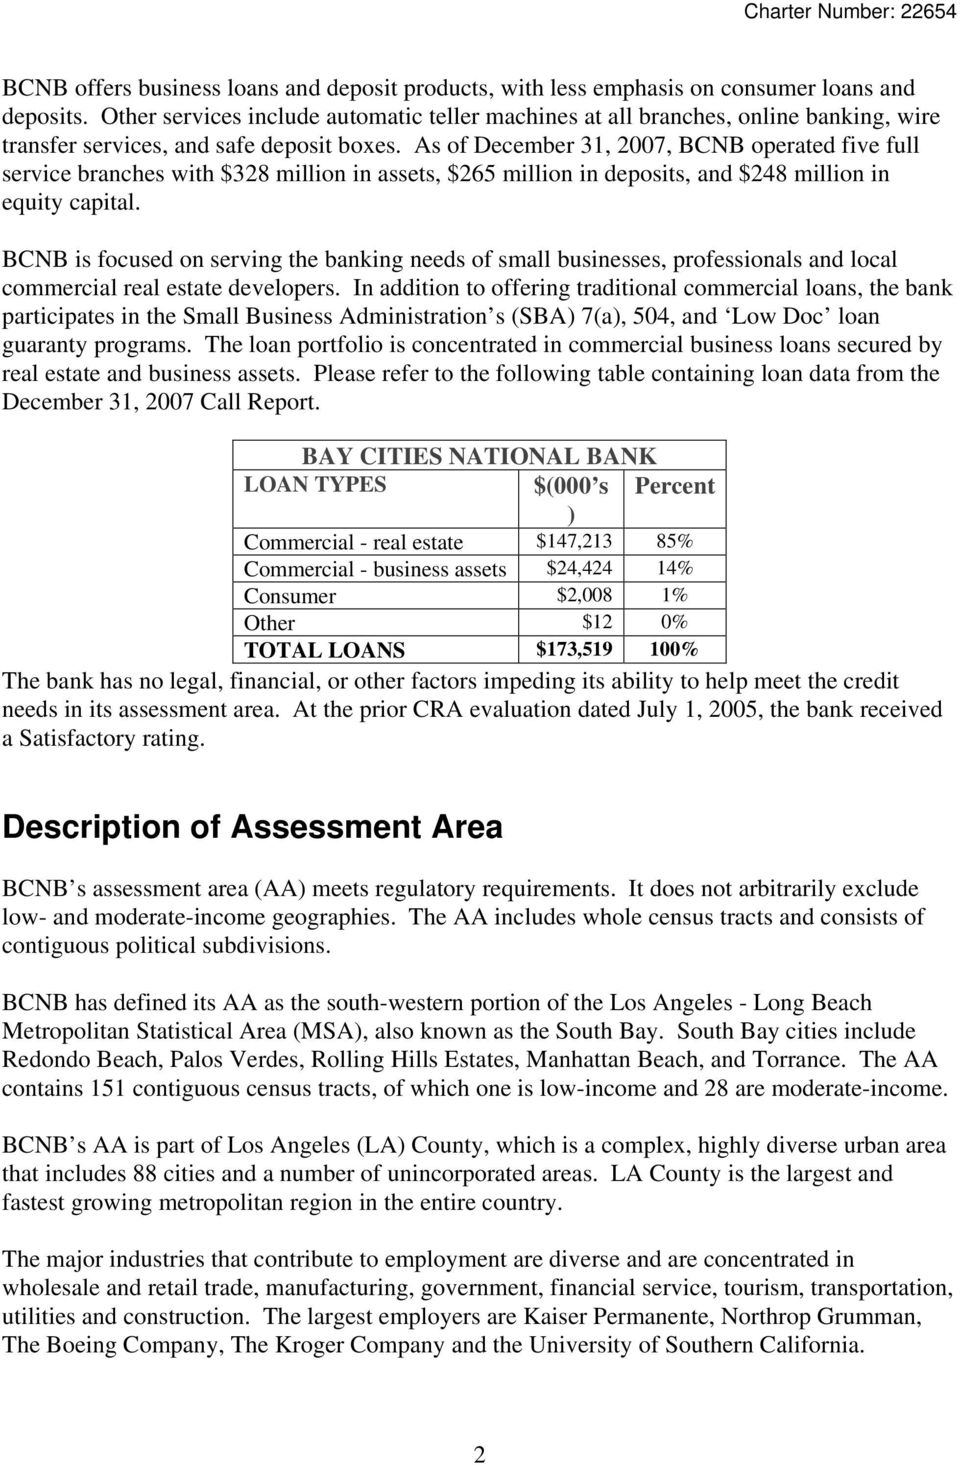 As of December 31, 2007, BCNB operated five full service branches with $328 million in assets, $265 million in deposits, and $248 million in equity capital.